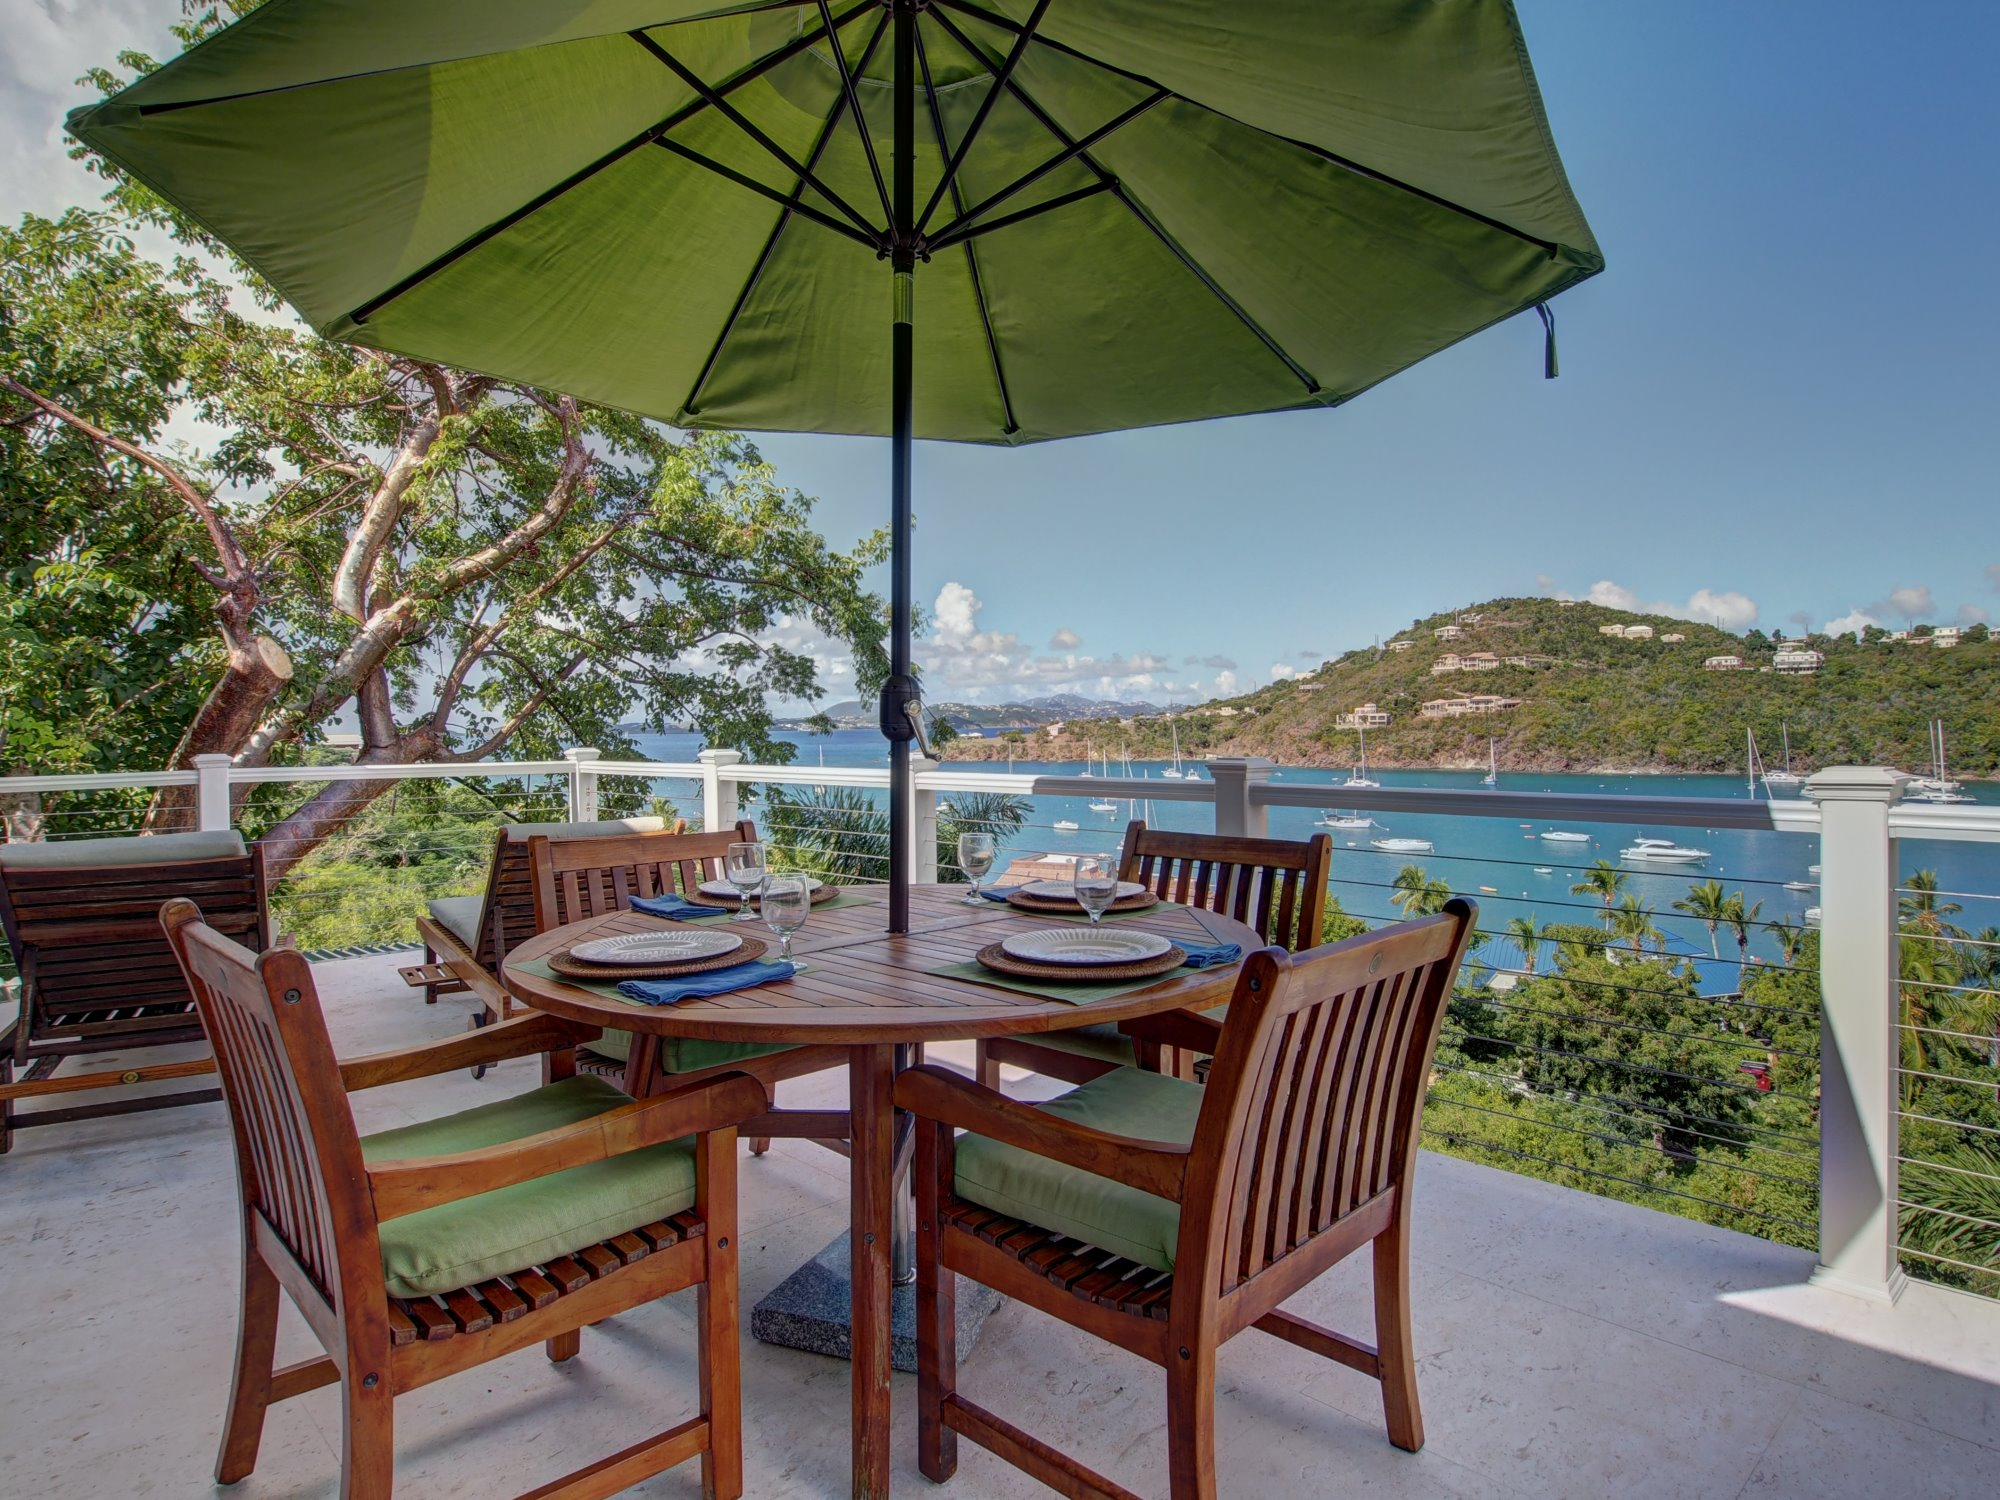 Enjoy the Breezes while dining on the deck!